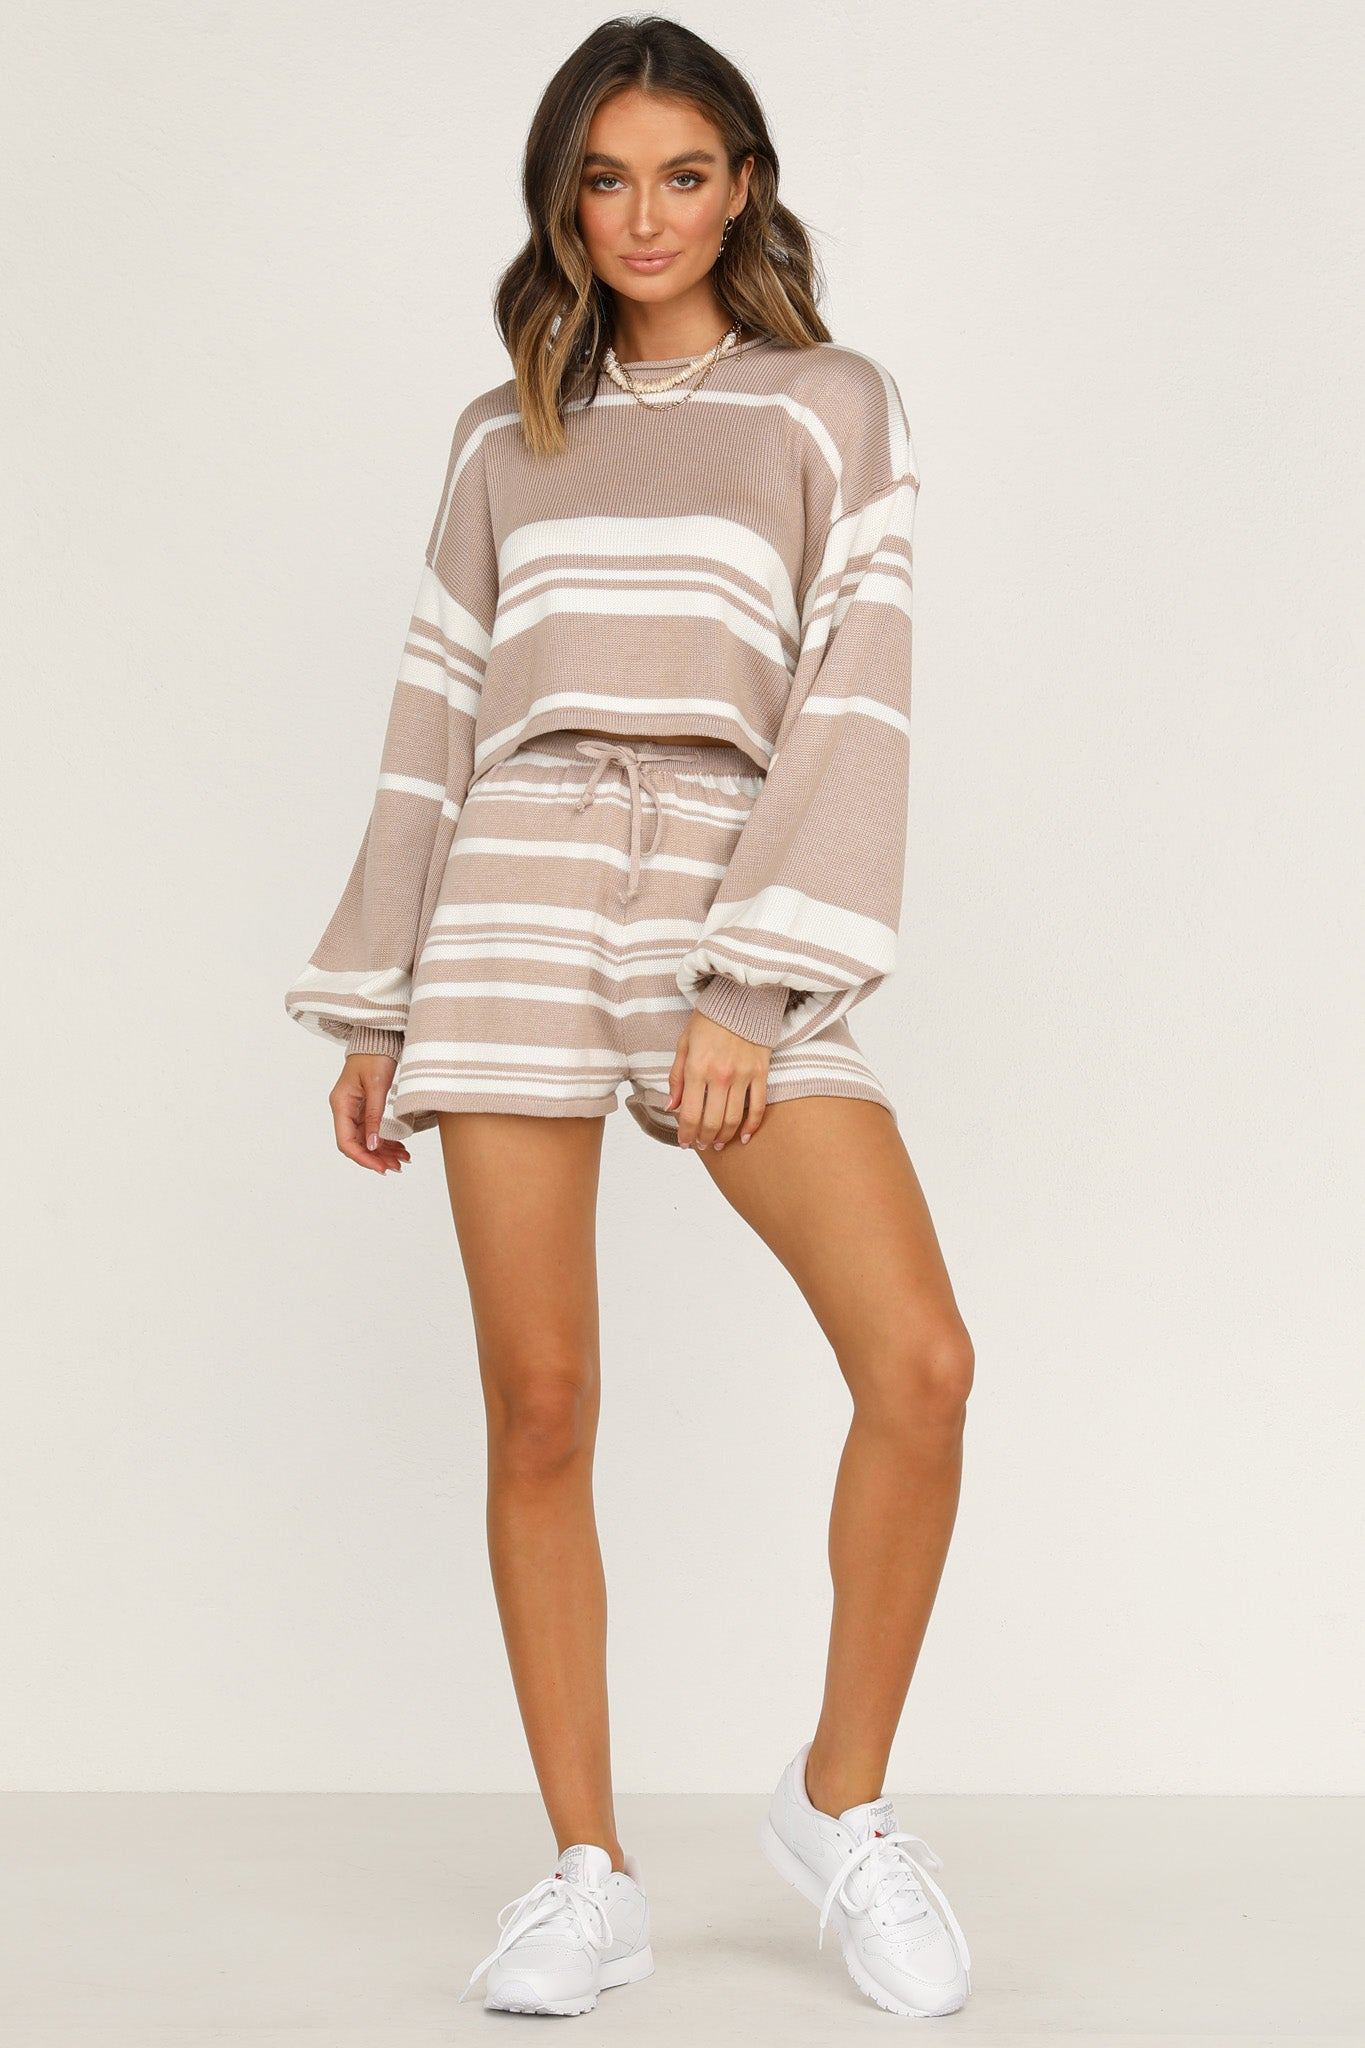 Best Behaviour Knit Shorts (Mocha)